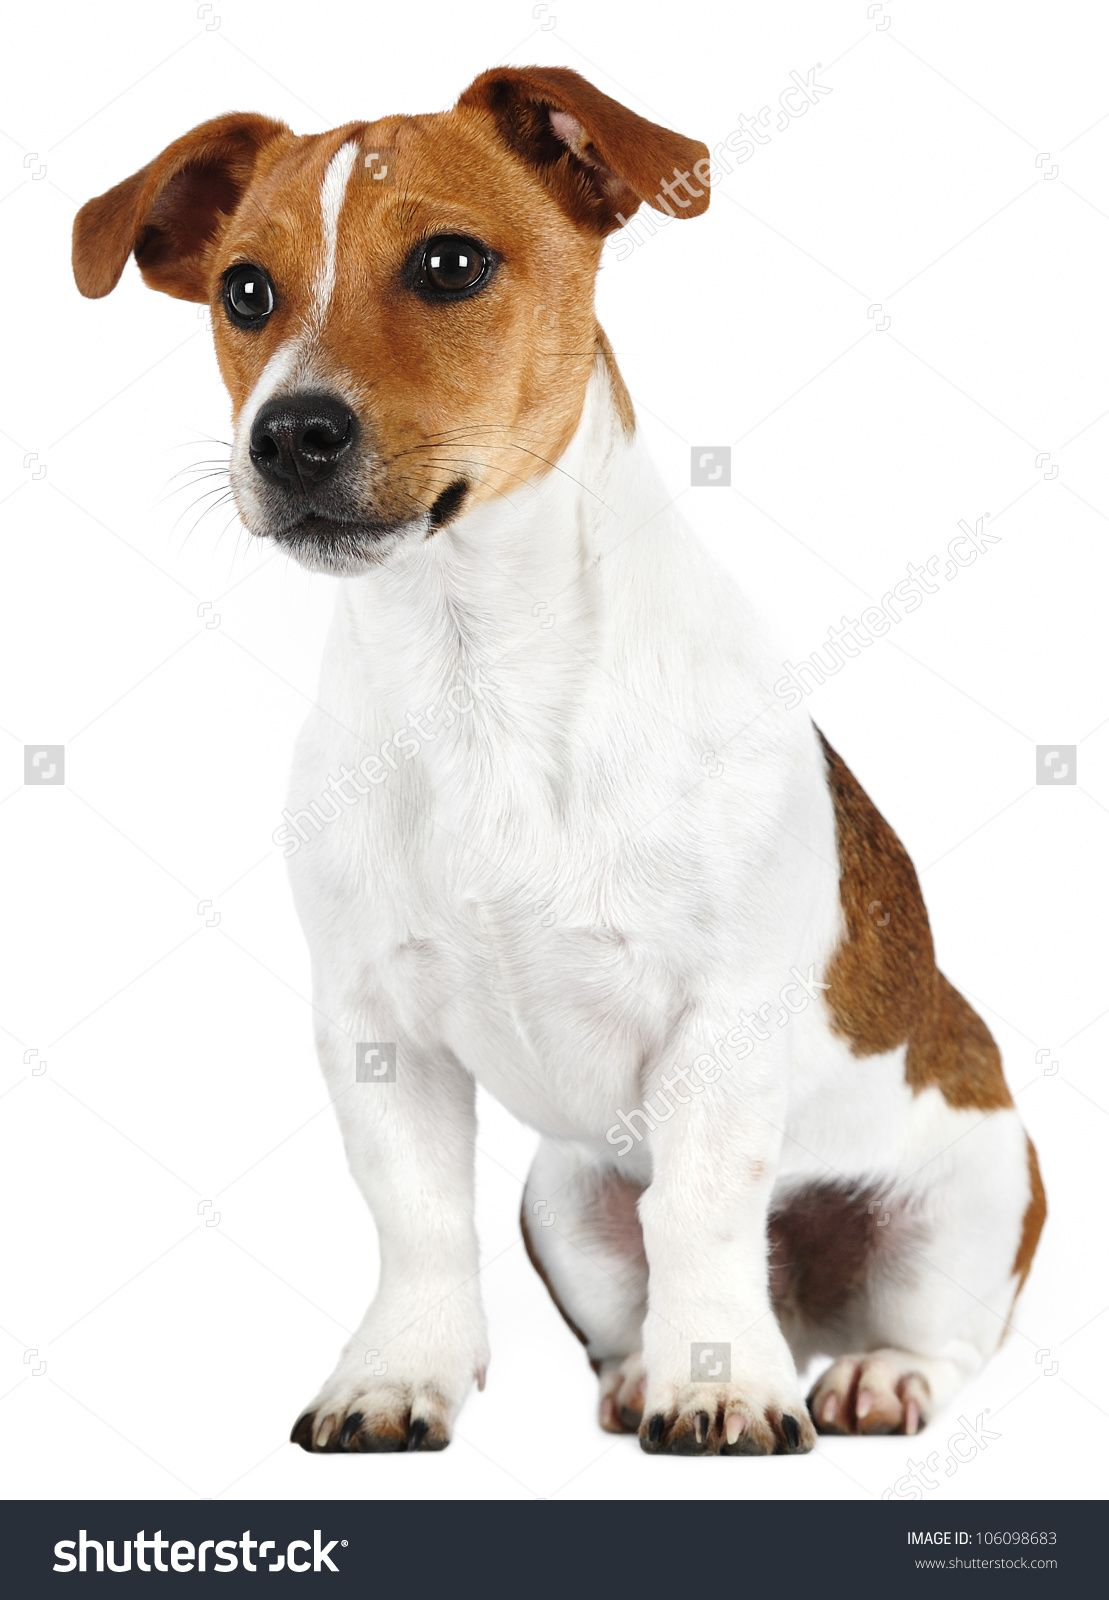 Jack Russell Terrier Read More About Living With Pet Dogs By Visiting The Link On The Image Most Popular Dog Breeds Dog Breeds Dog Breeds List